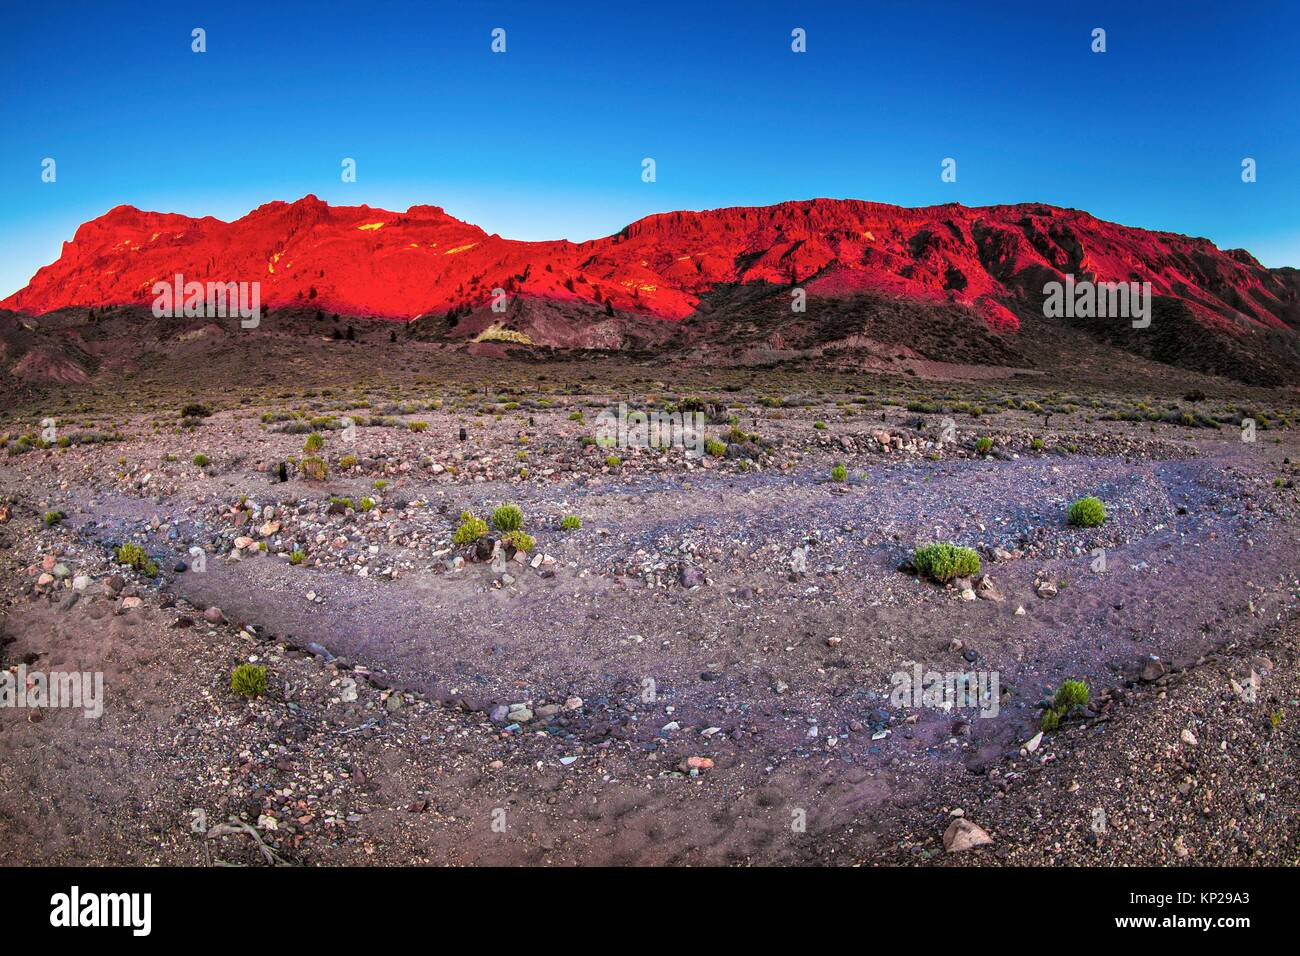 Teide National Park during the blue hour - Stock Image